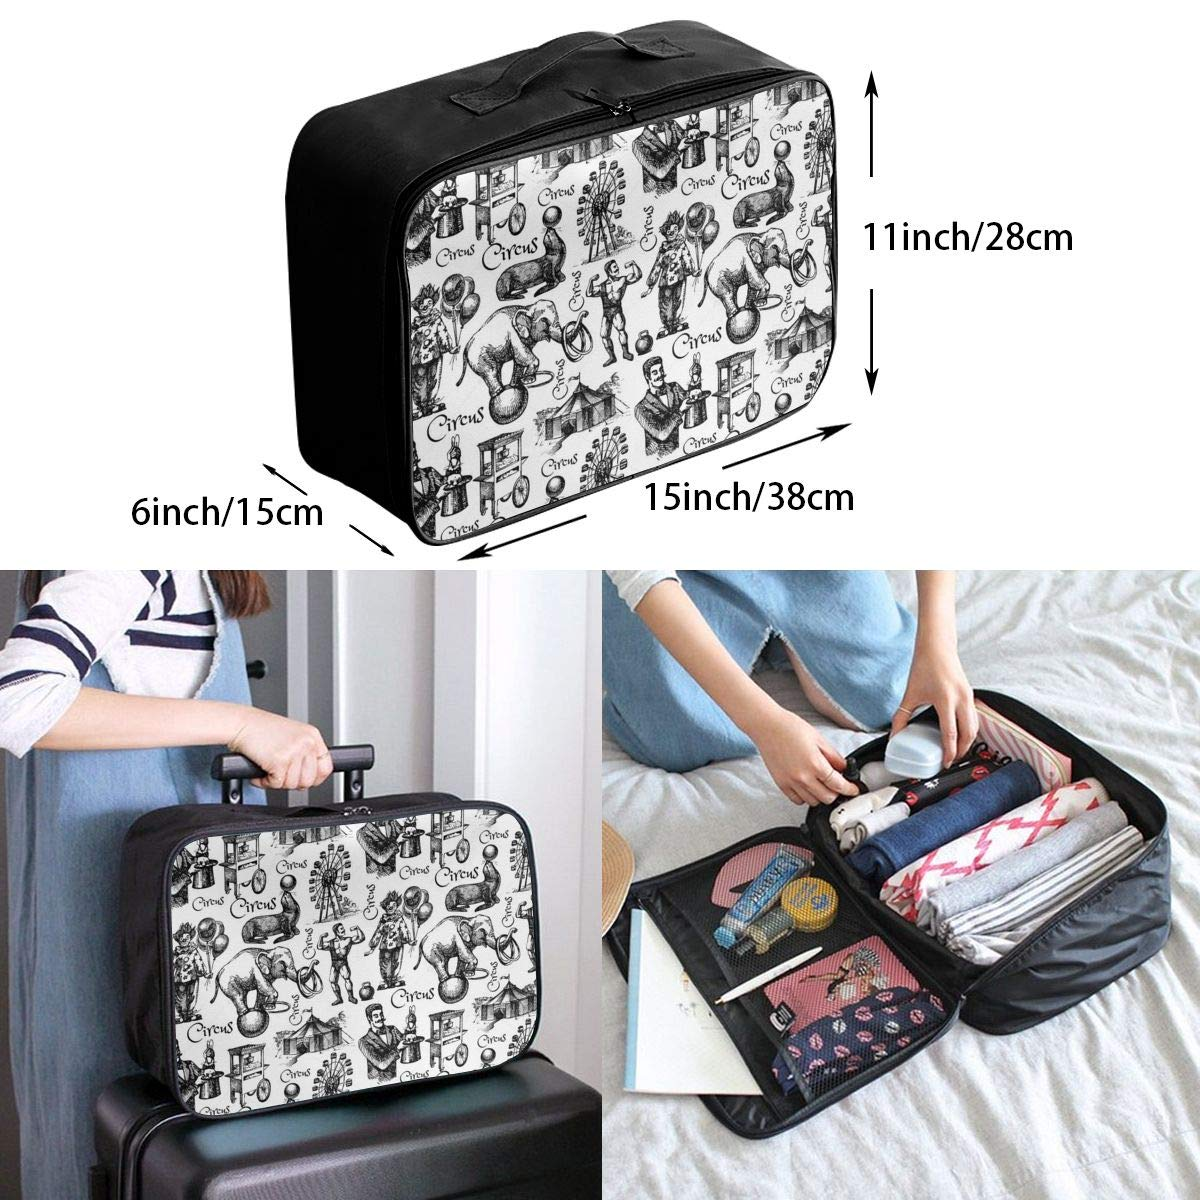 JTRVW Luggage Bags for Travel Portable Luggage Duffel Bag Rose Pattern Travel Bags Carry-on in Trolley Handle